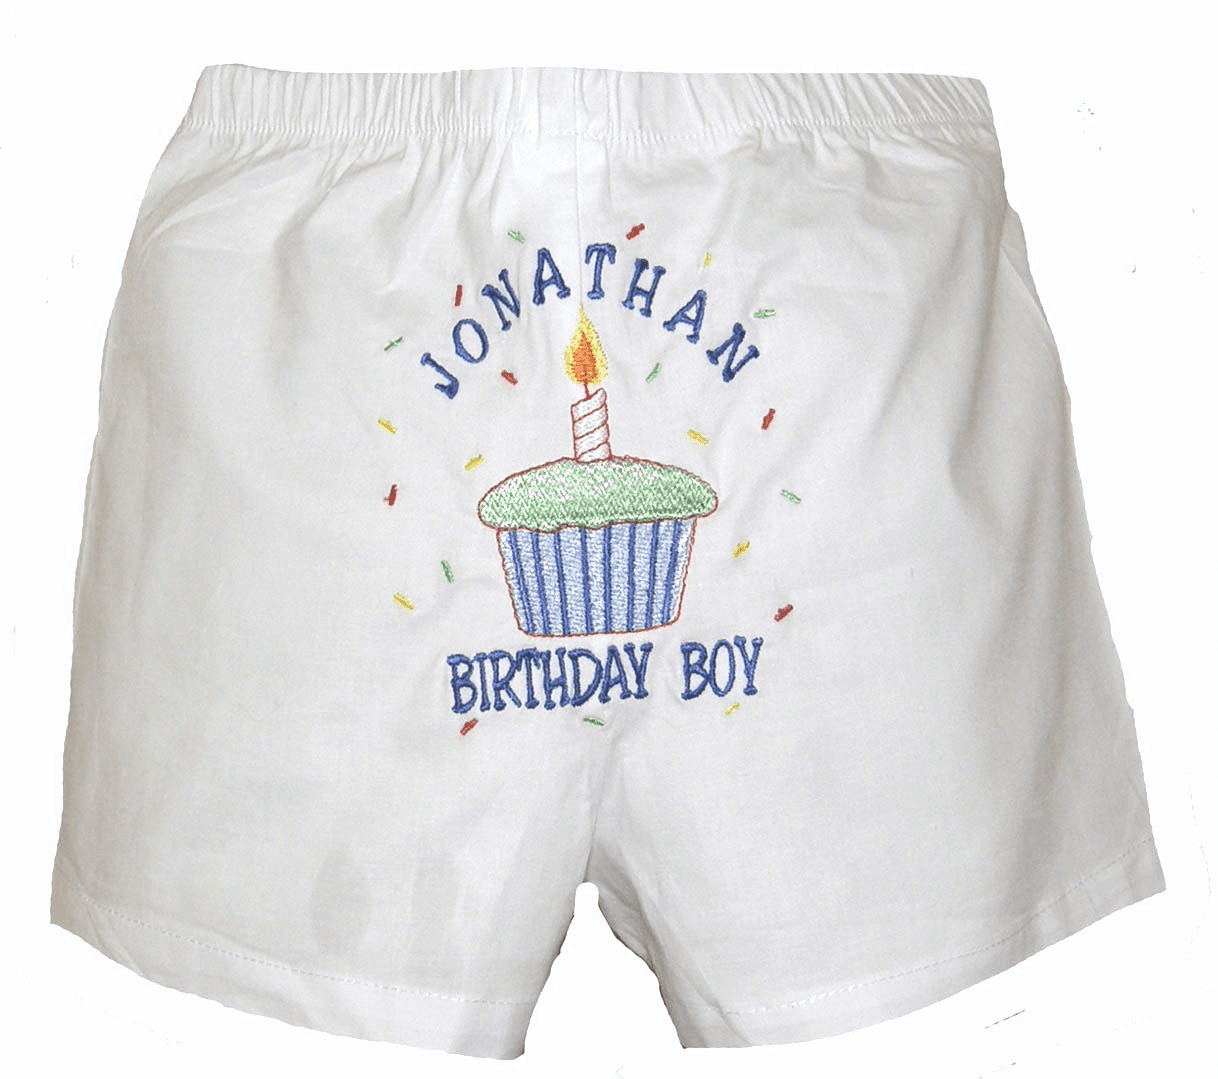 Birthday Boy Cupcake and Confetti Personalized Baby Infant Boxers White